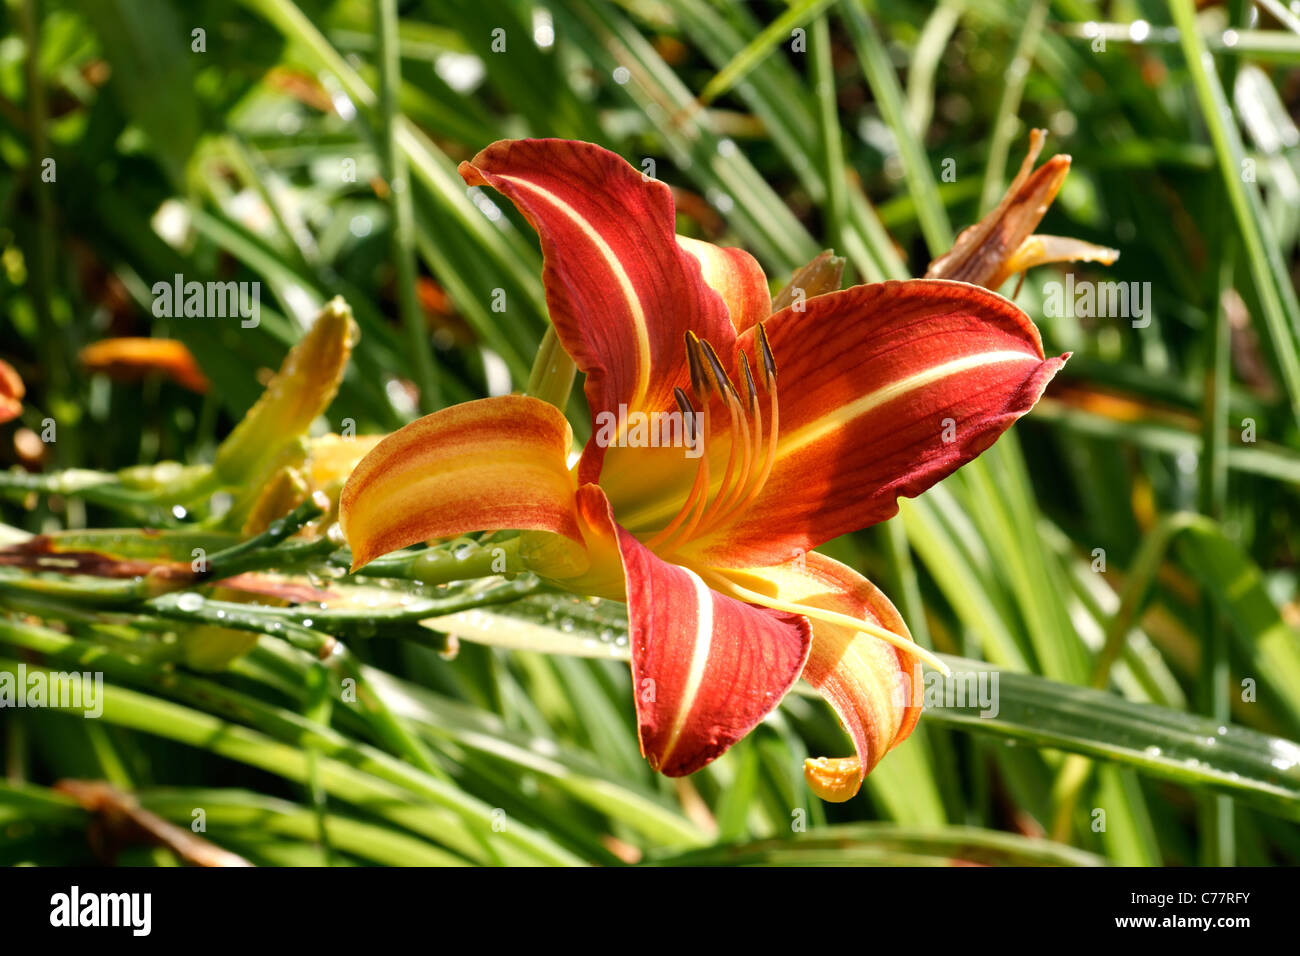 Day lily flower yellow and red flower perennial plant stock photo day lily flower yellow and red flower perennial plant hemerocallis izmirmasajfo